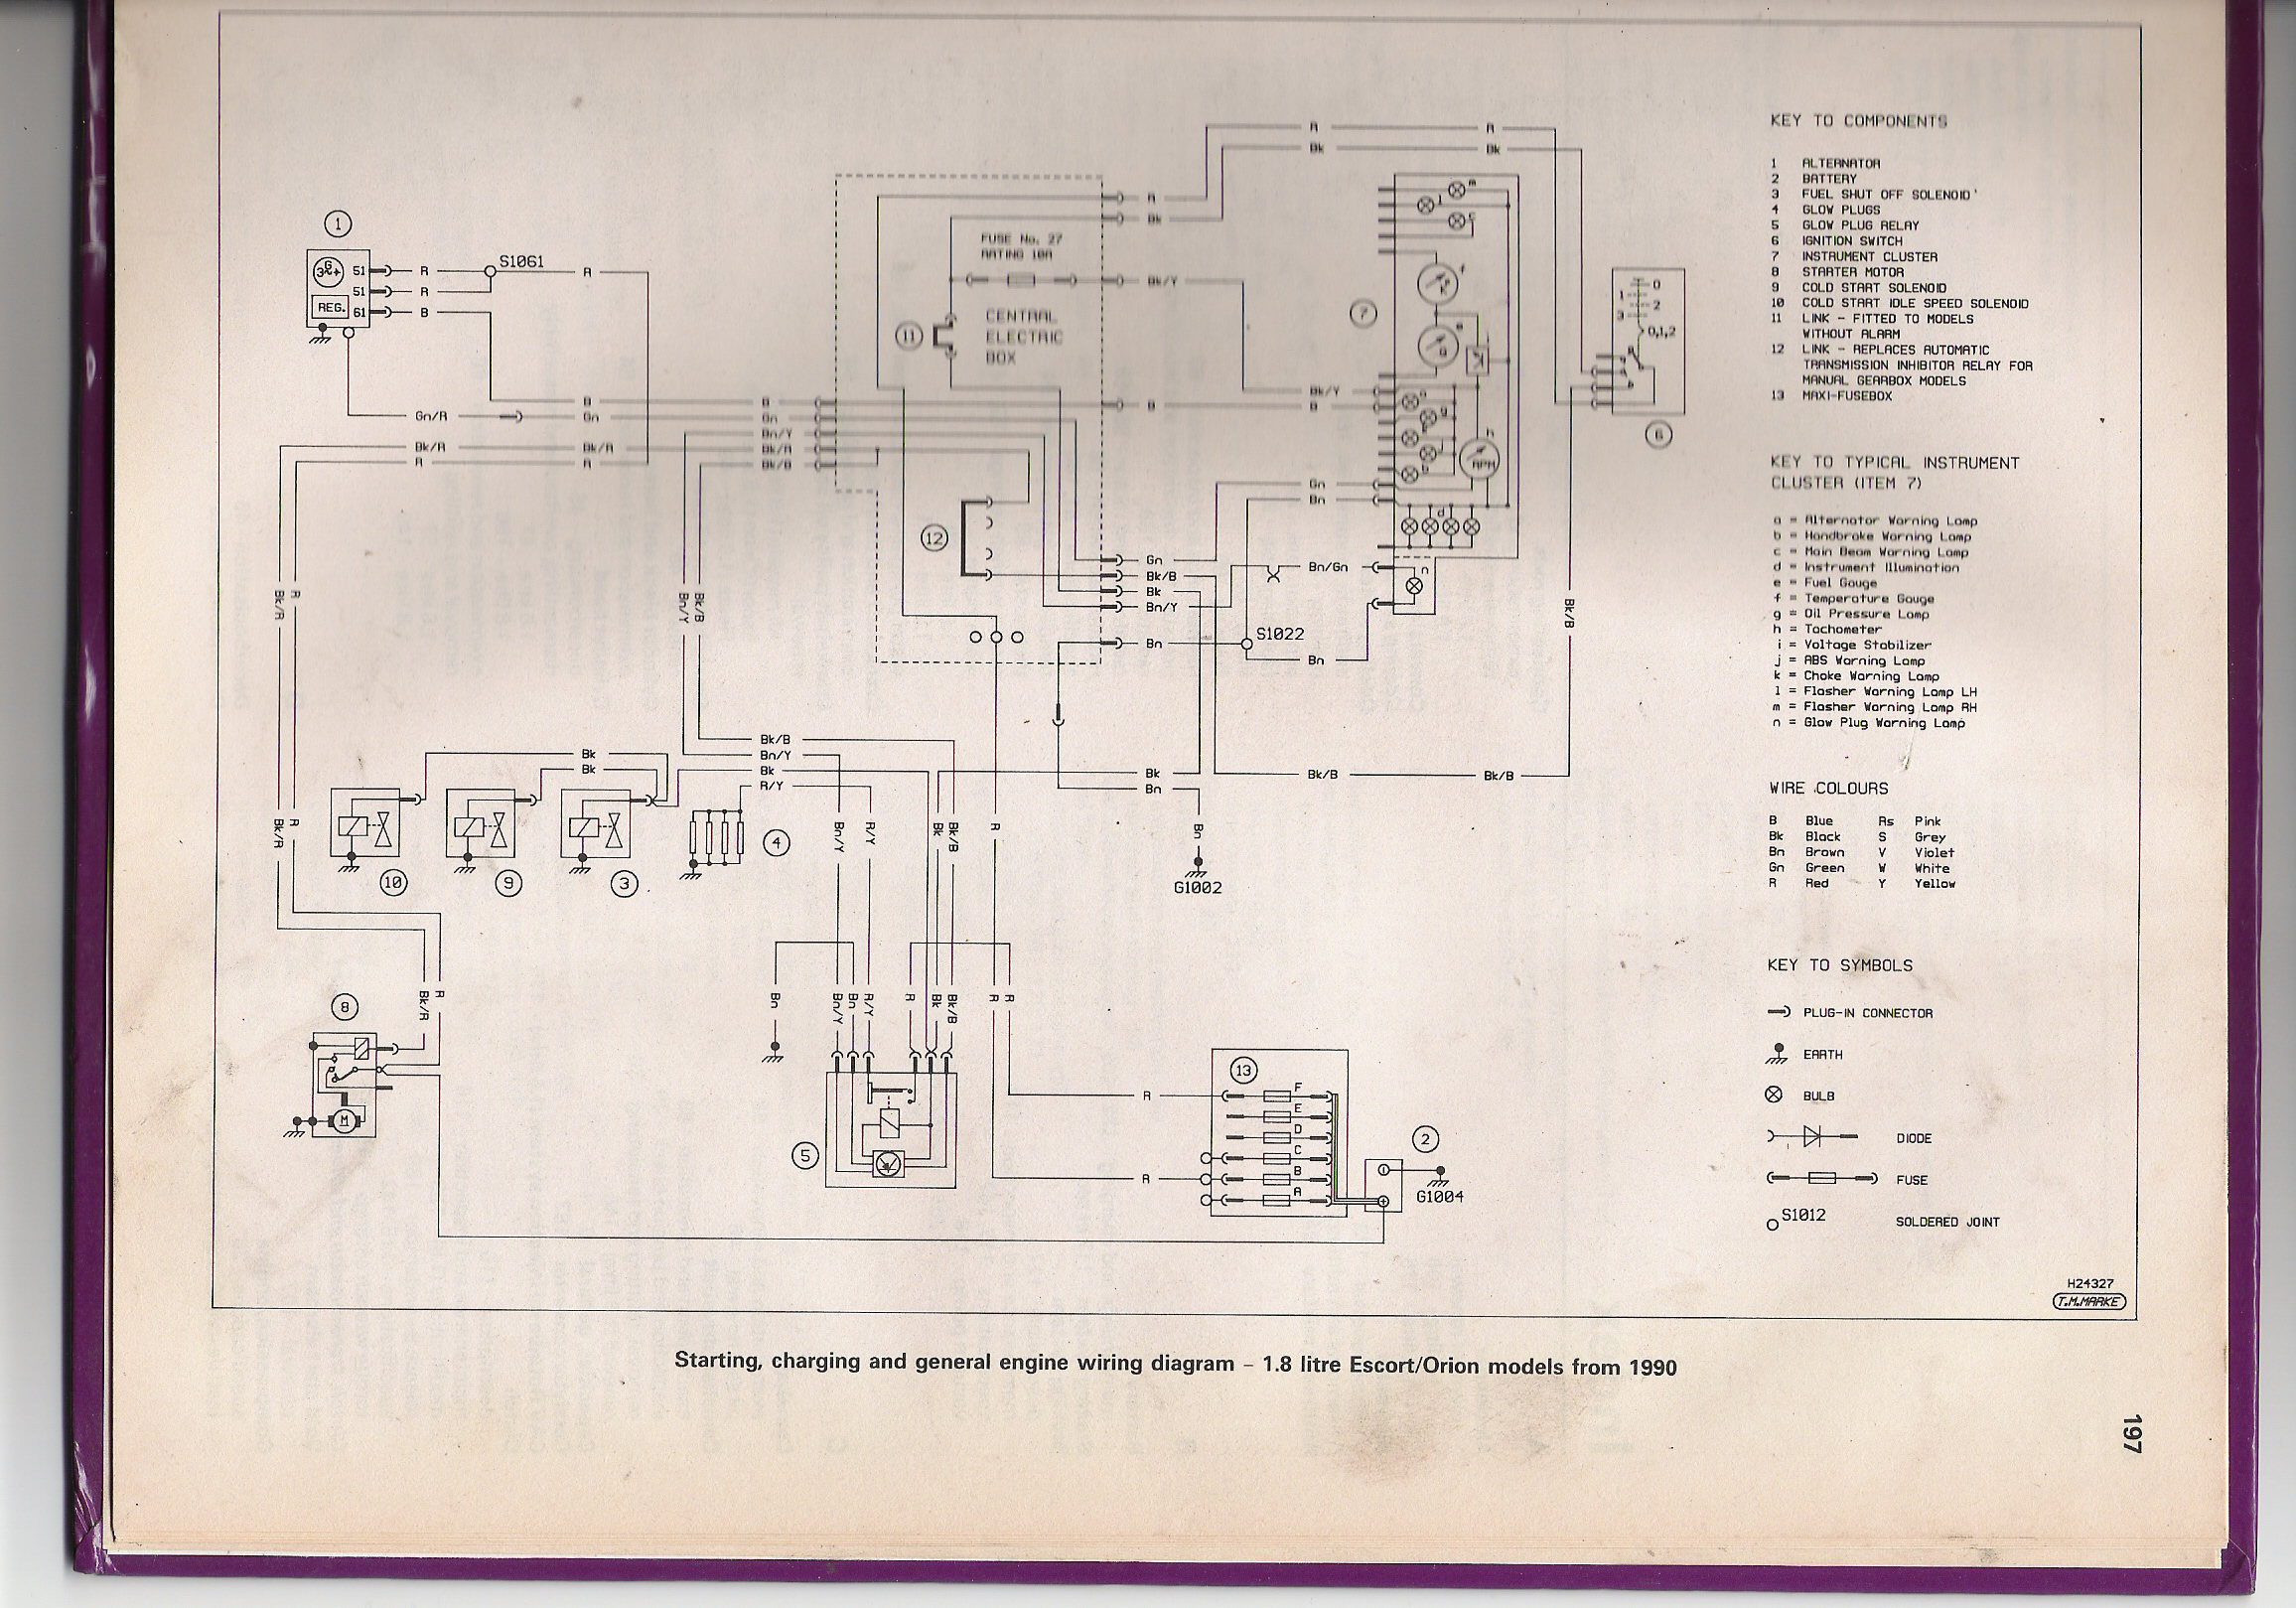 fordwiringdl mk4 wiring diagram wiring diagram symbols \u2022 wiring diagrams j 1999 ford escort wiring diagram pdf at bakdesigns.co